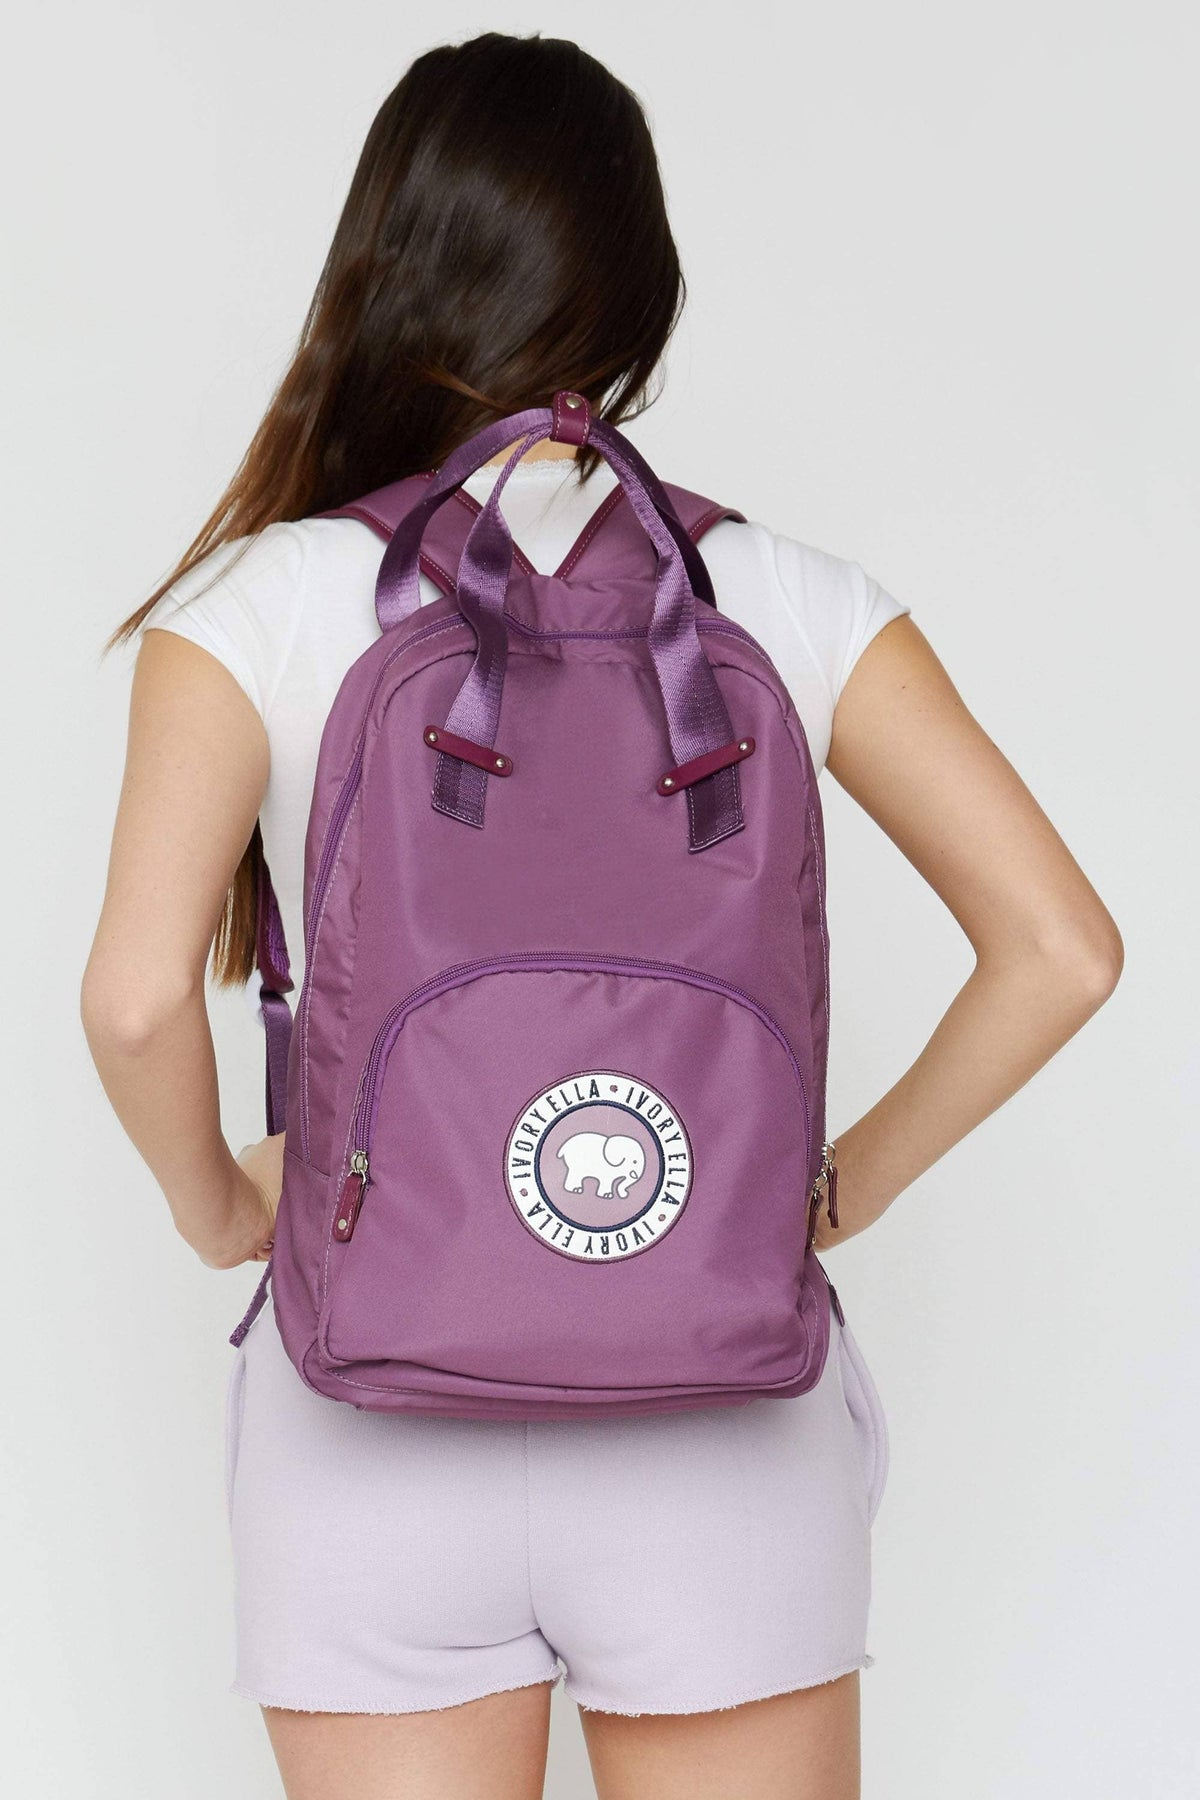 Ivory Ella Accessories Purple Backpack